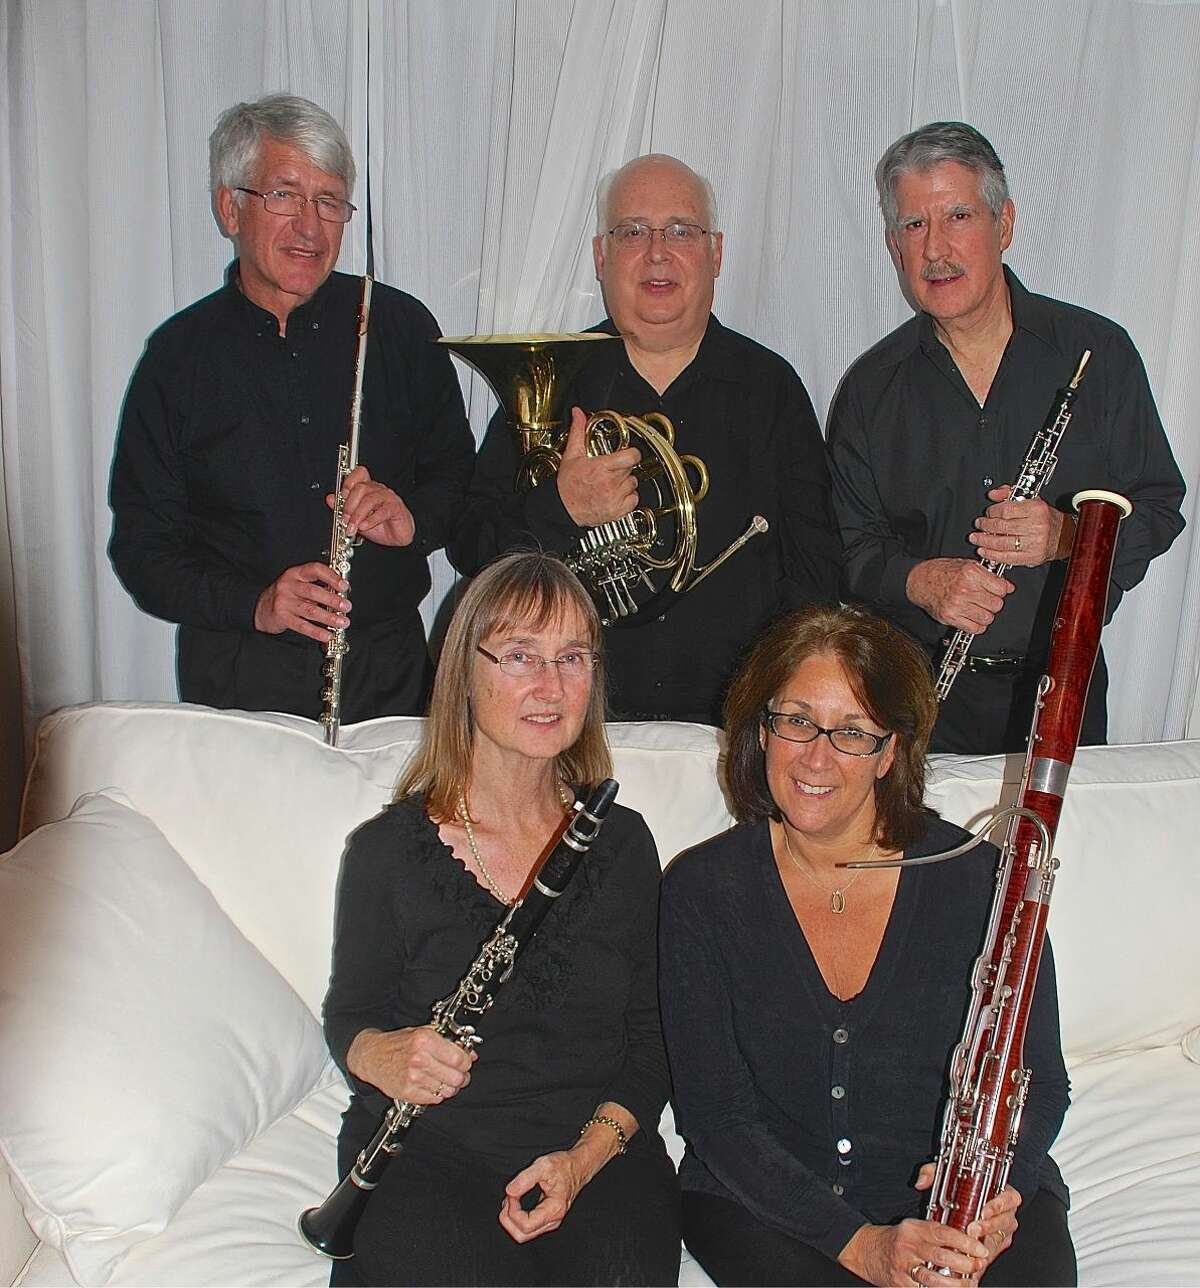 Madera Winds performs at Wilton Library's Connecticut's Own concert on Sunday, Jan. 11, from 4-5 p.m. with a program entitled,